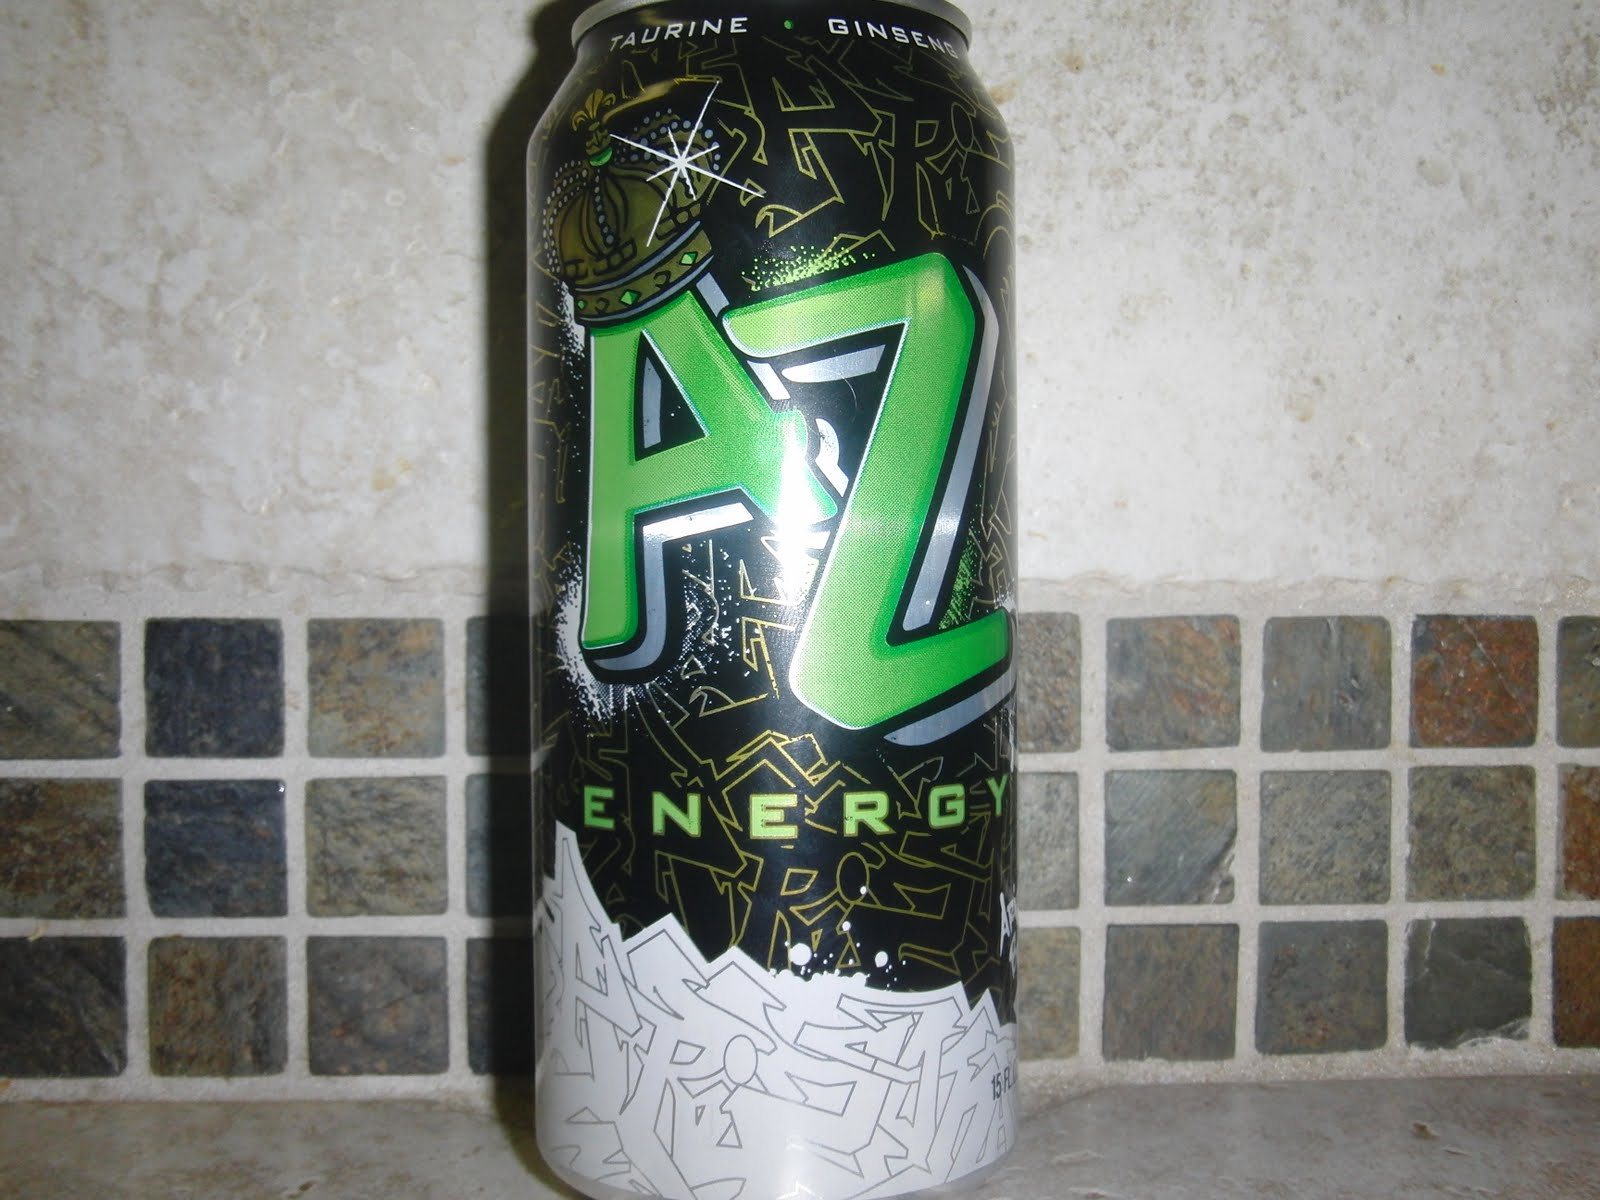 ADDICTED 2 ENERGY!: arizona energy drink good